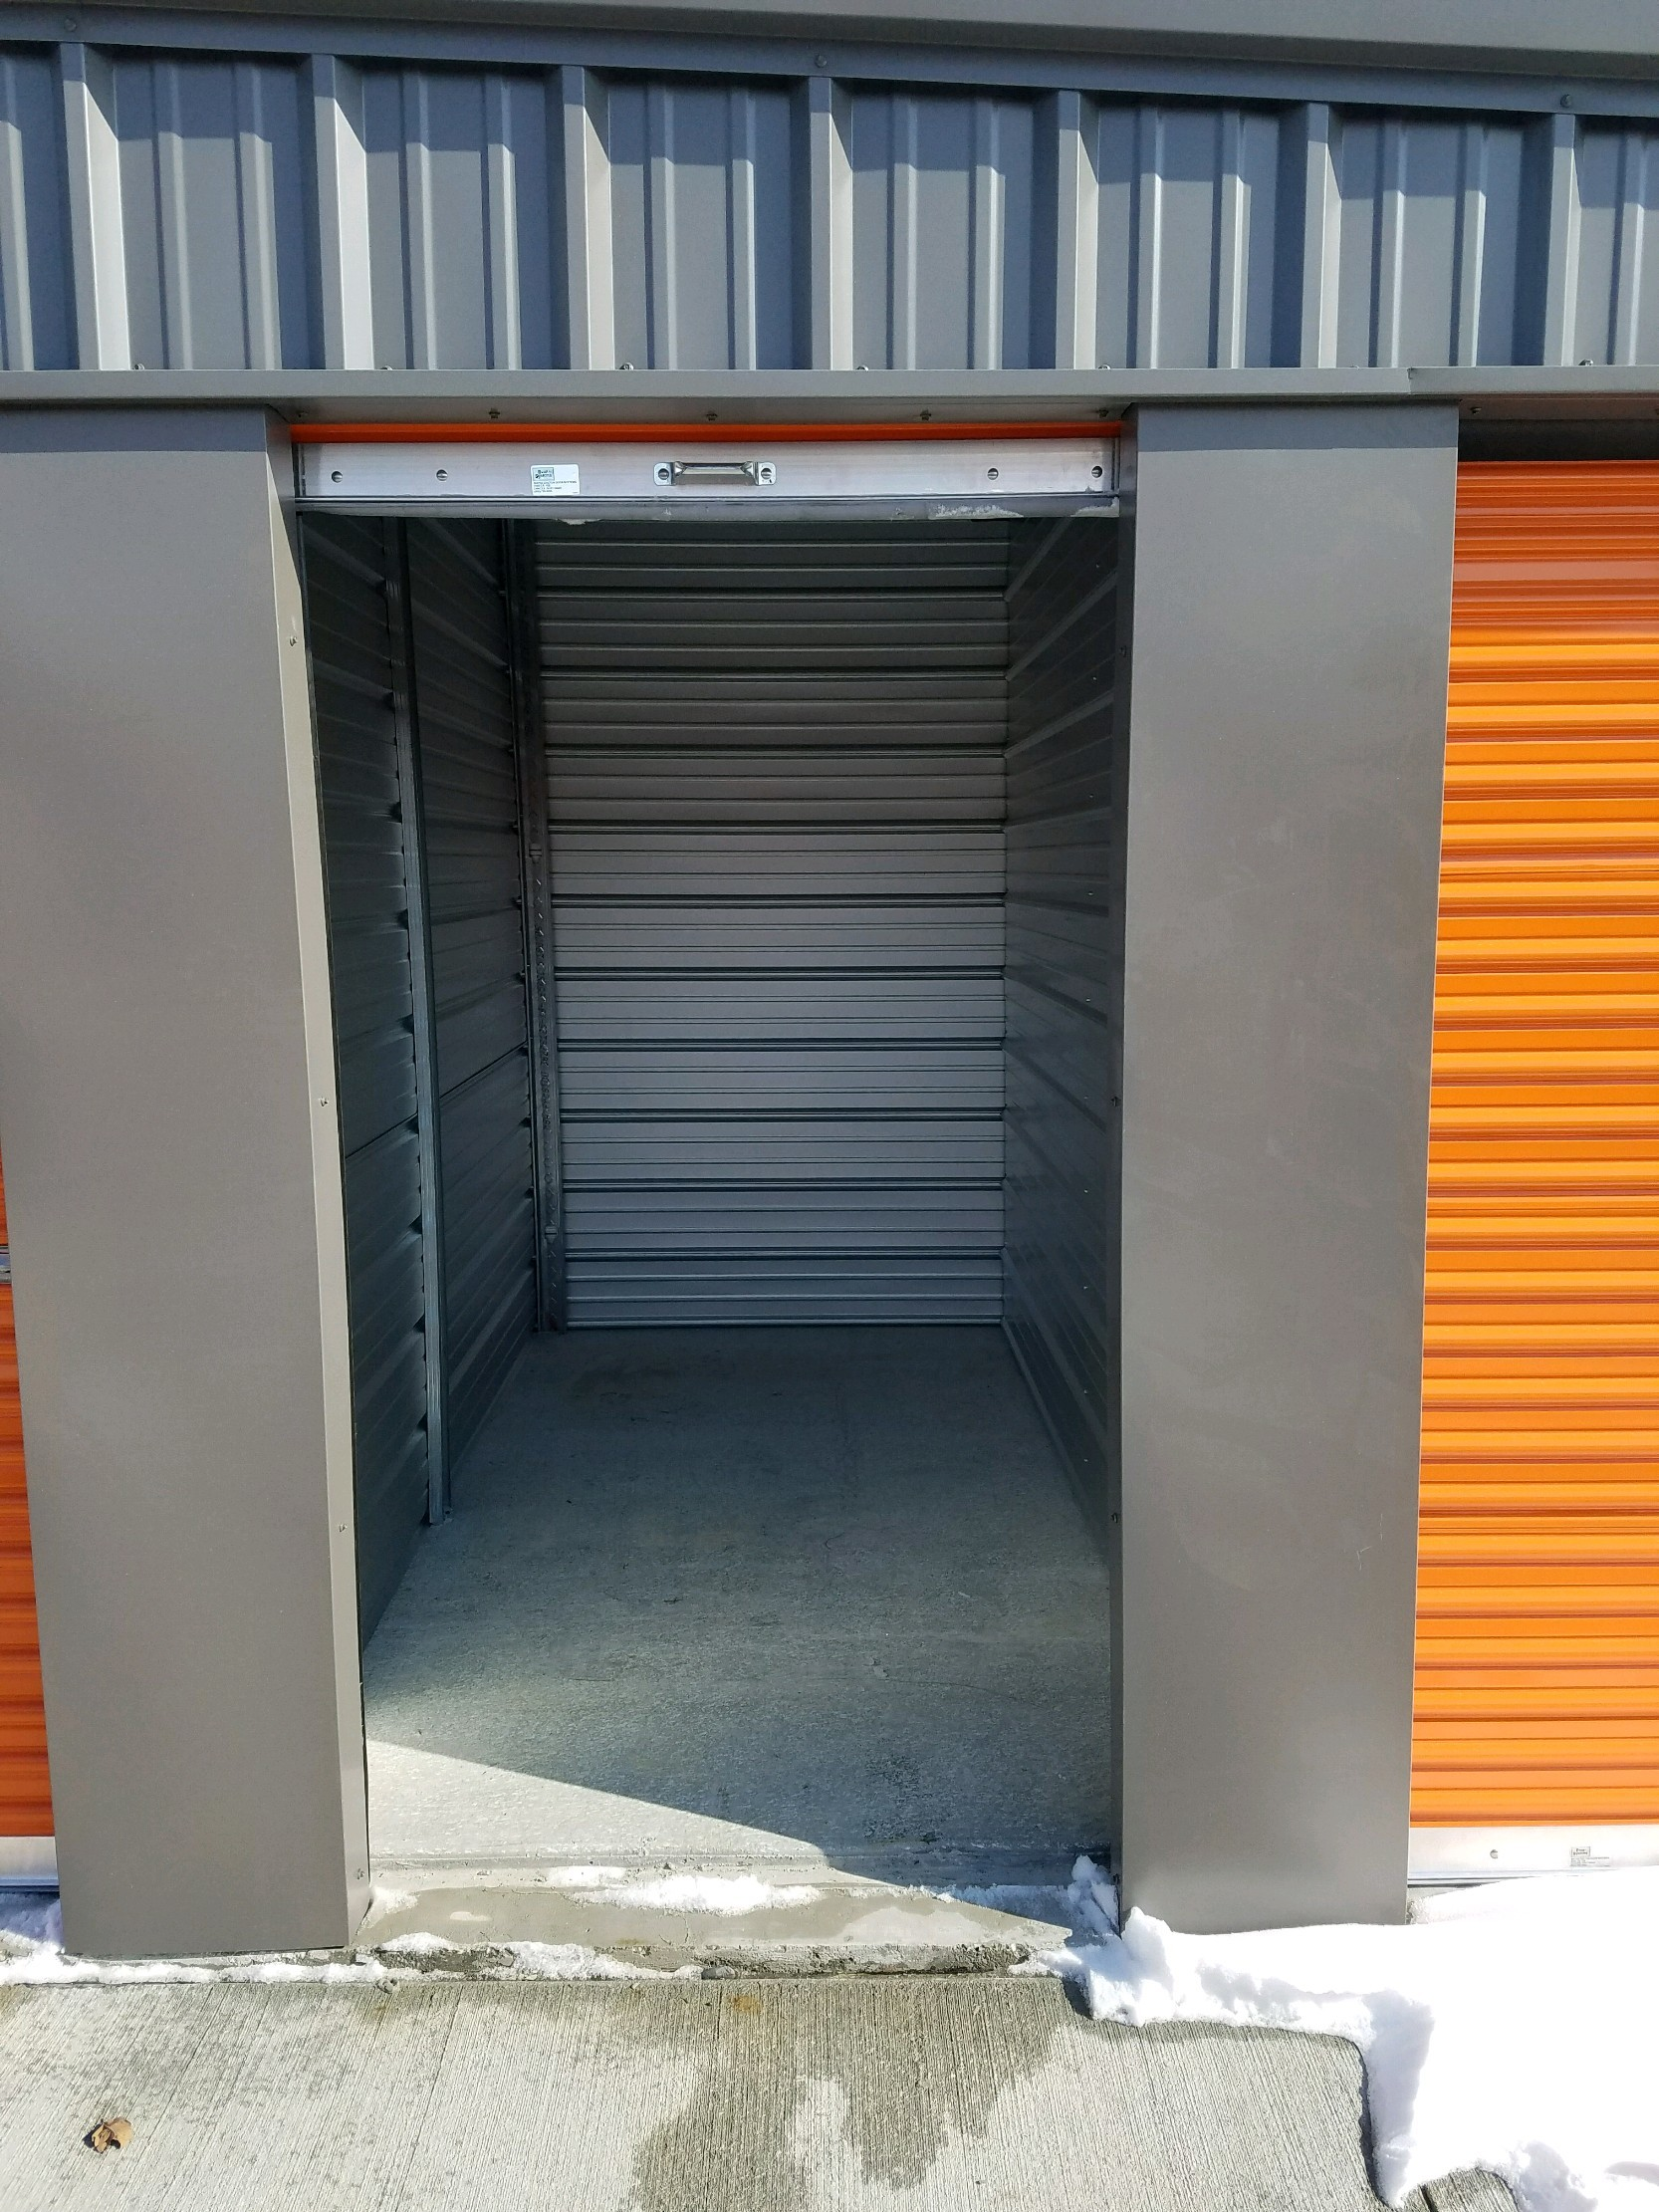 5' x 10' Self Storage Unit in Solon, Iowa at V' s Self Storage